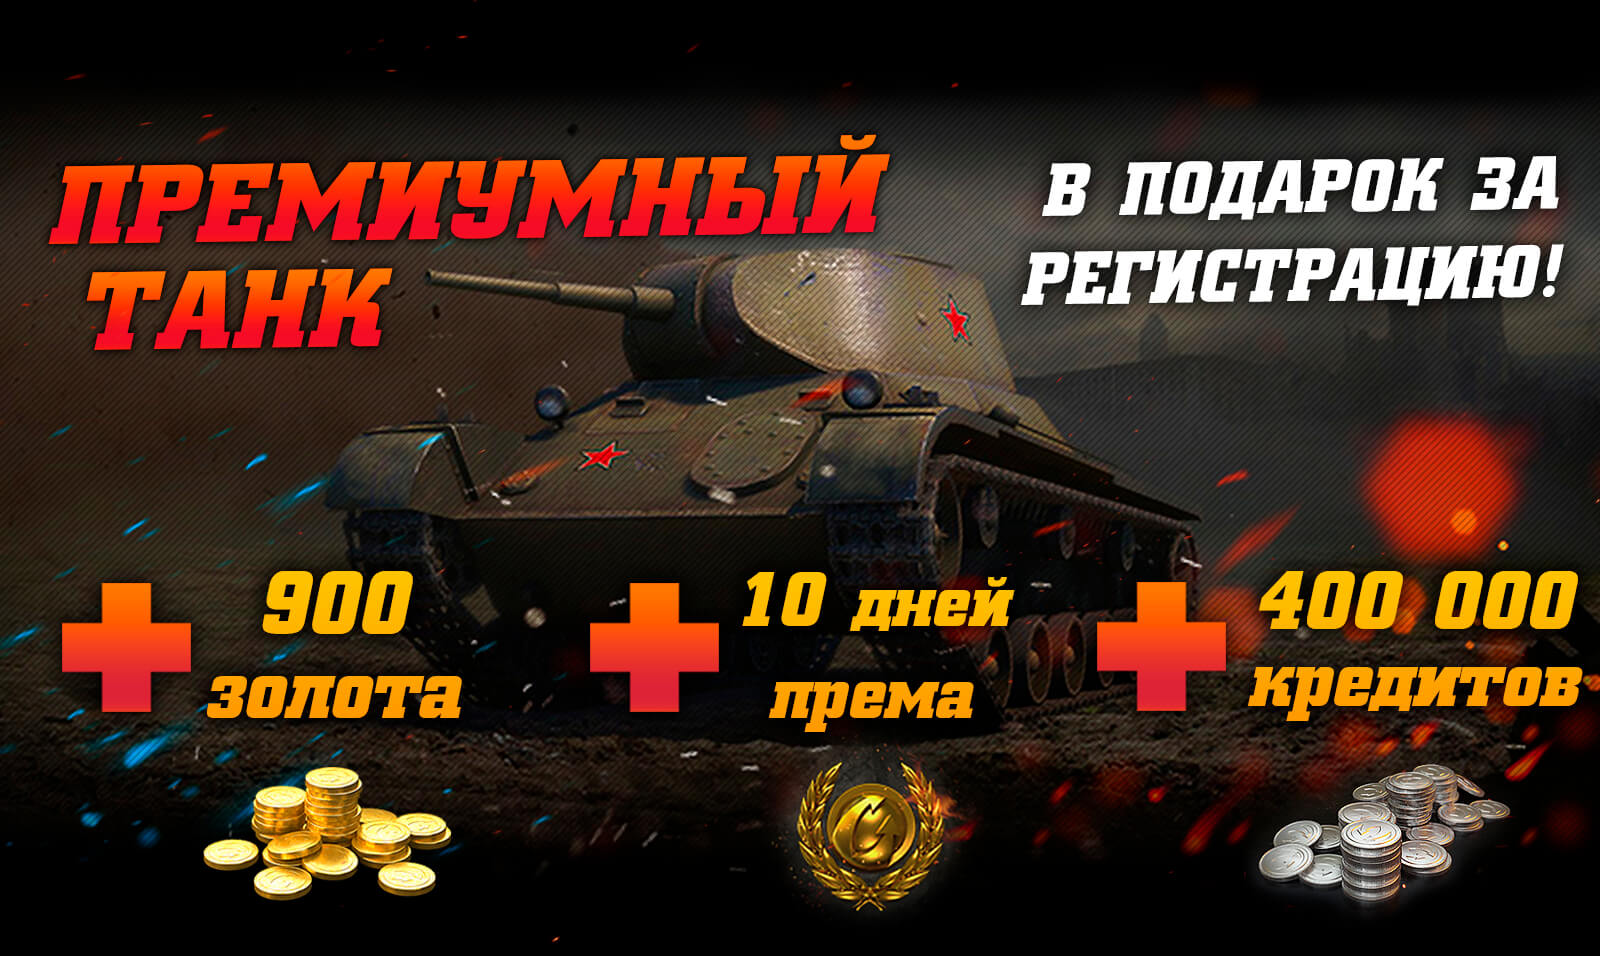 Инвайт-код для World of Tanks (декабрь 2018)